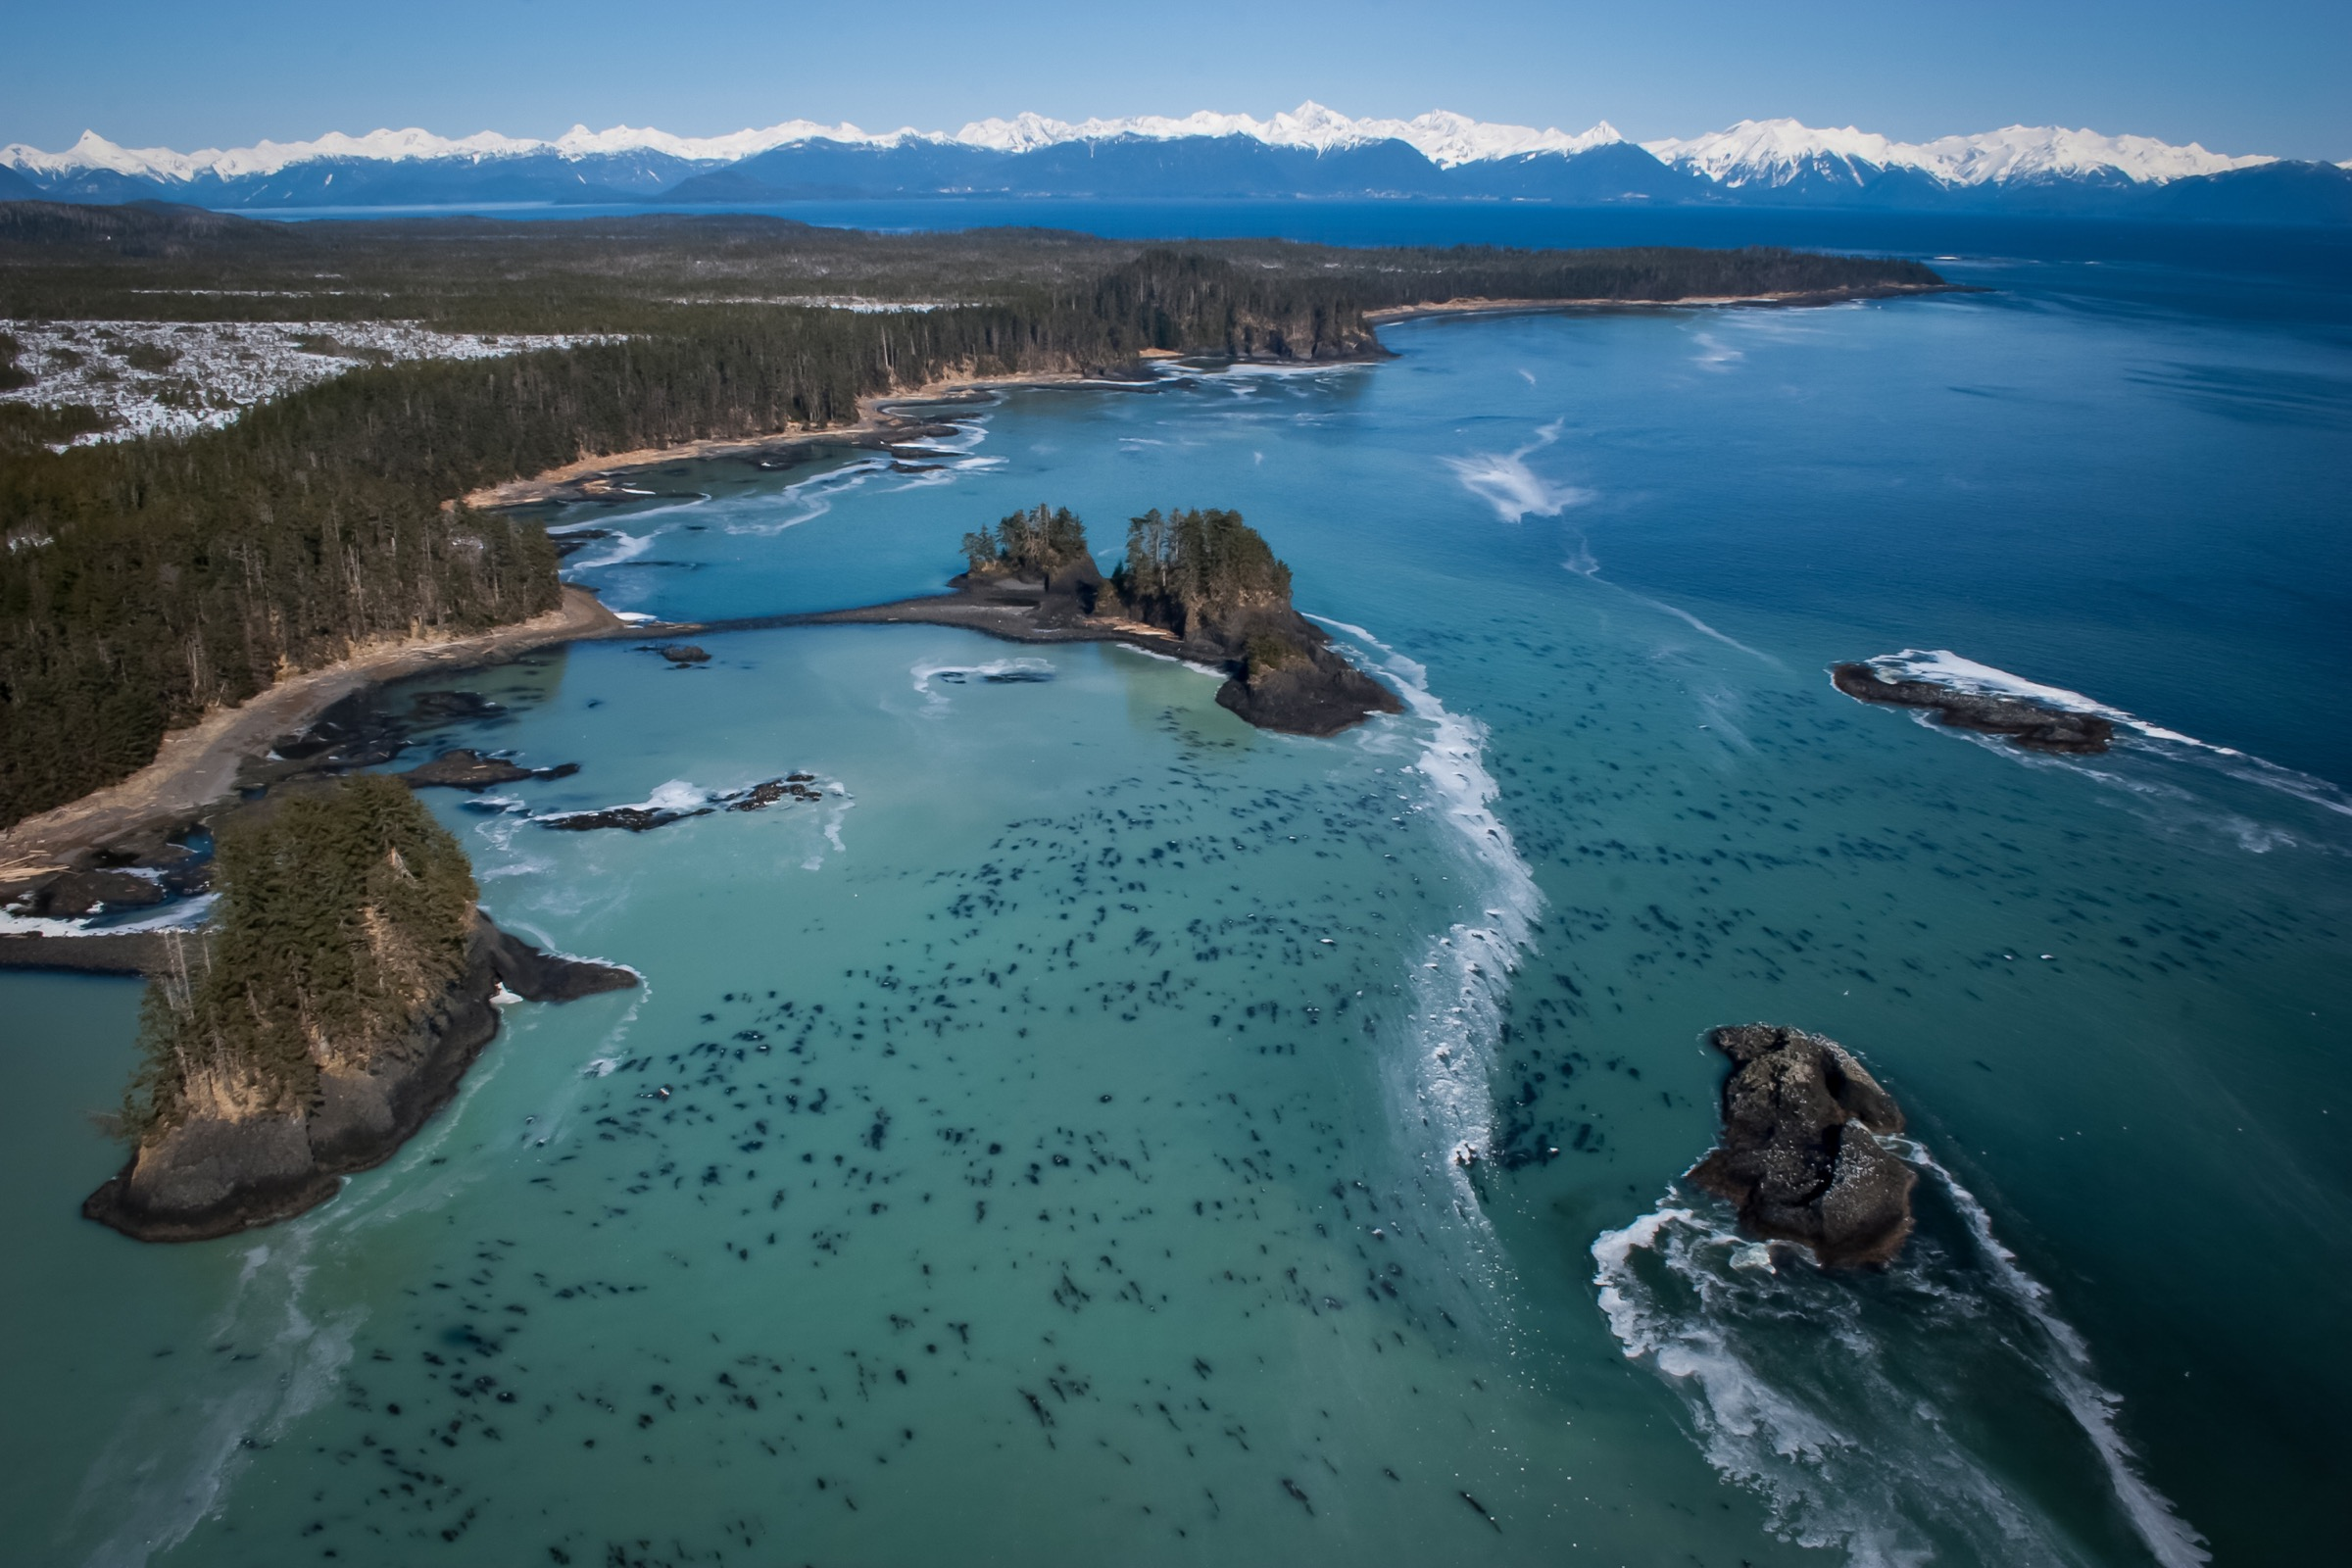 Aerial view of the Alaskan coastline near Sitka, with the sea covered in Pacific herring spawn. Photograph by Hugh Pearson